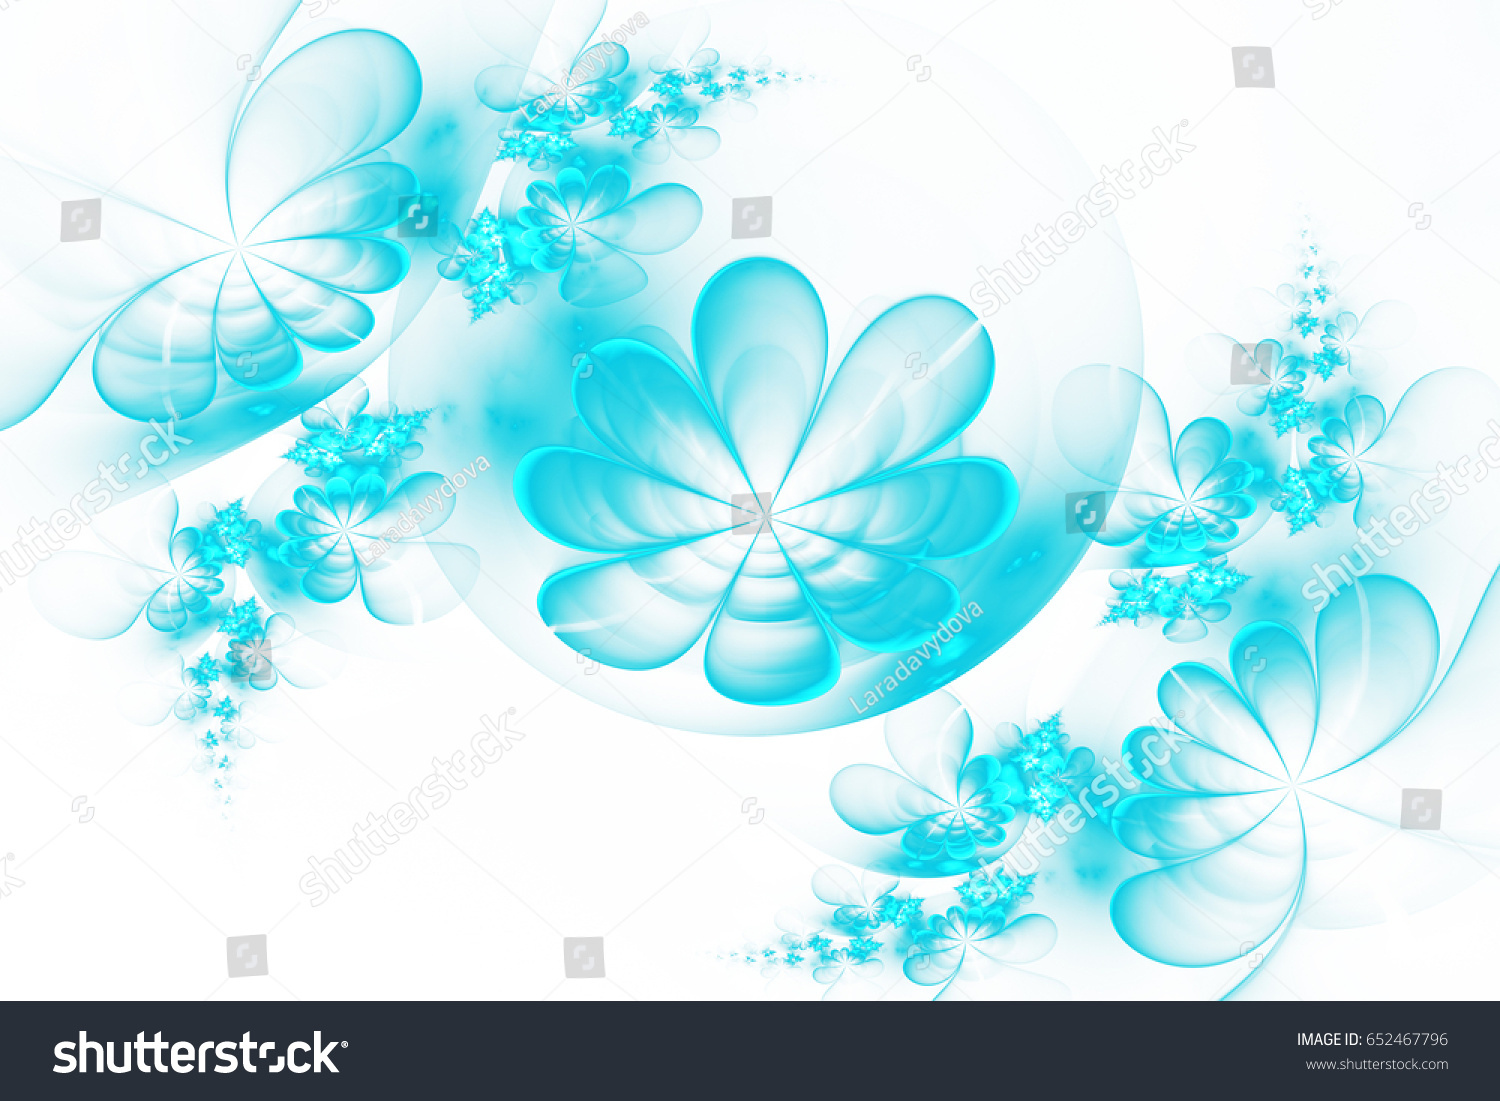 Abstract blue flowers on white background stock illustration abstract blue flowers on a white background computer generated image izmirmasajfo